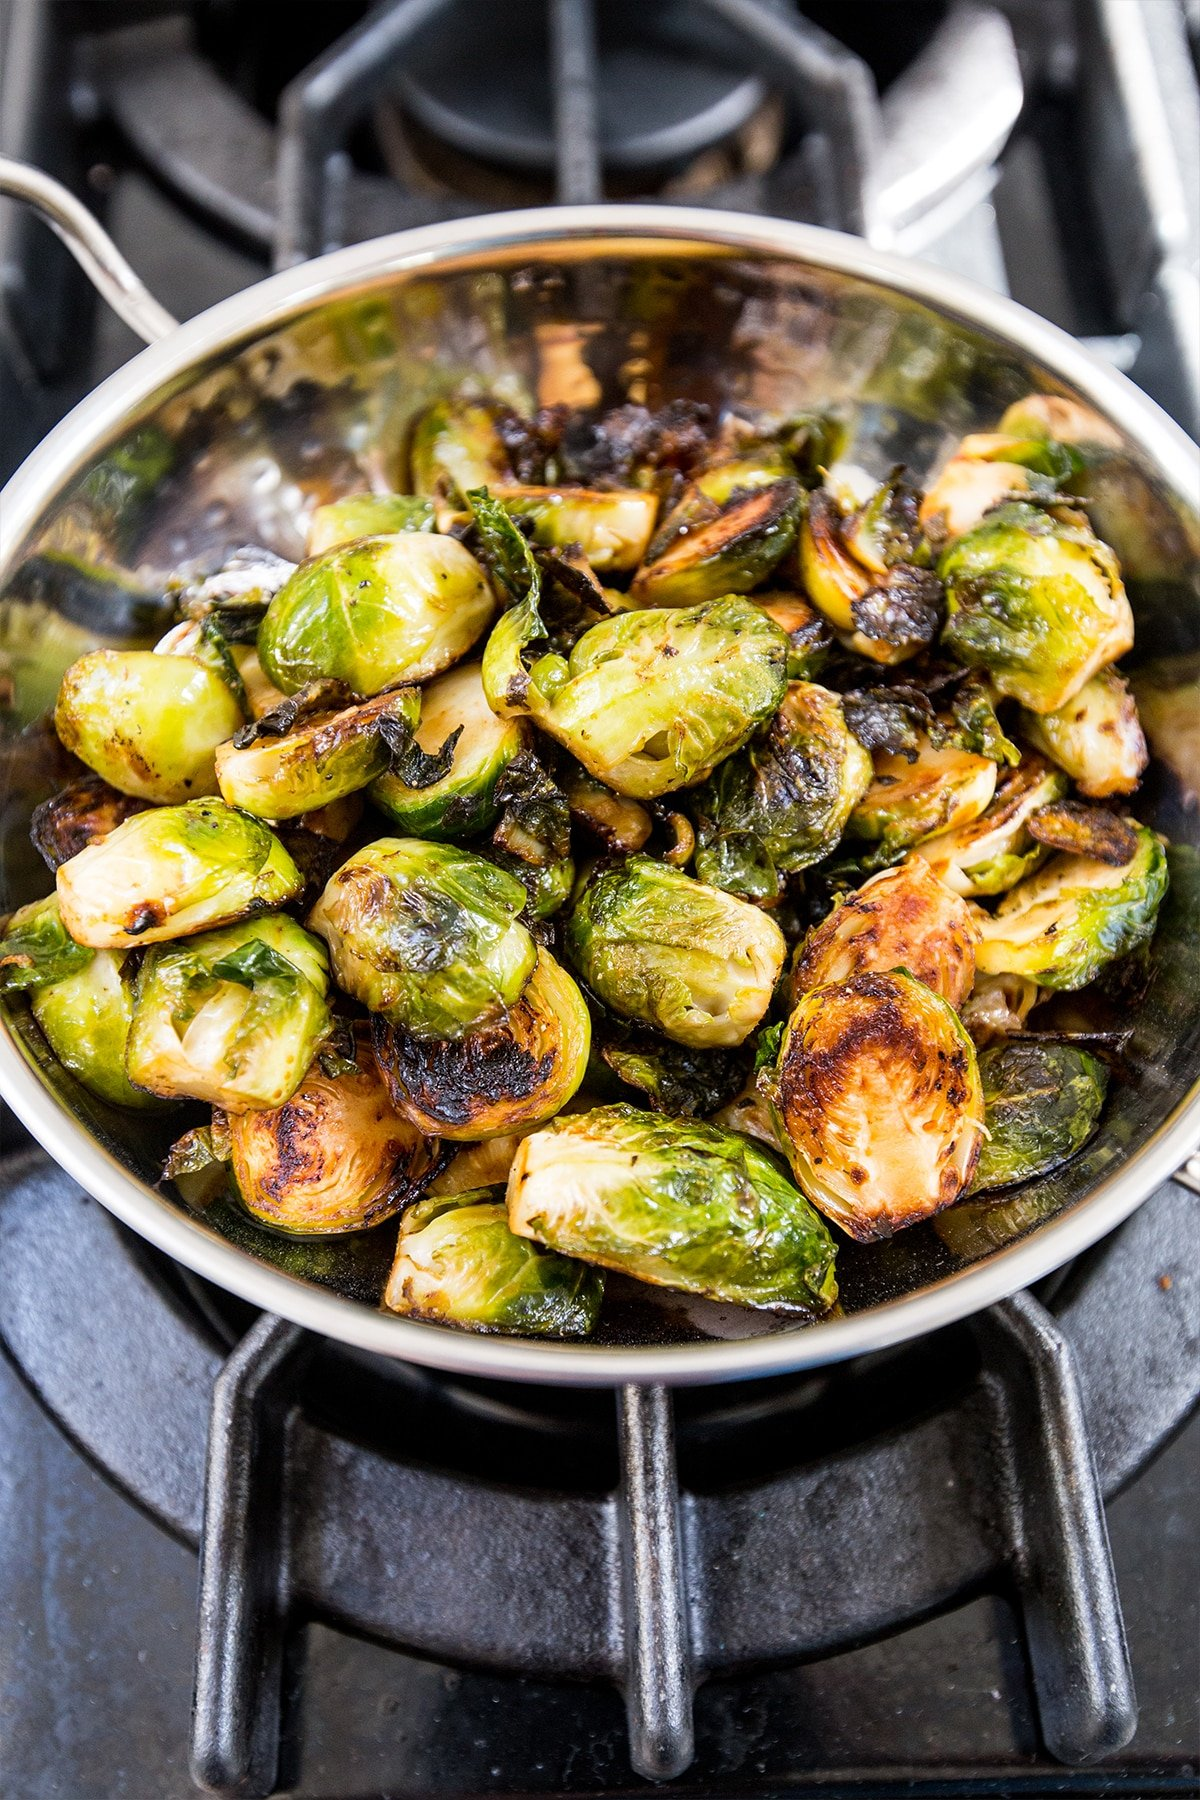 This is the most delicious way to cook brussels sprouts ever!